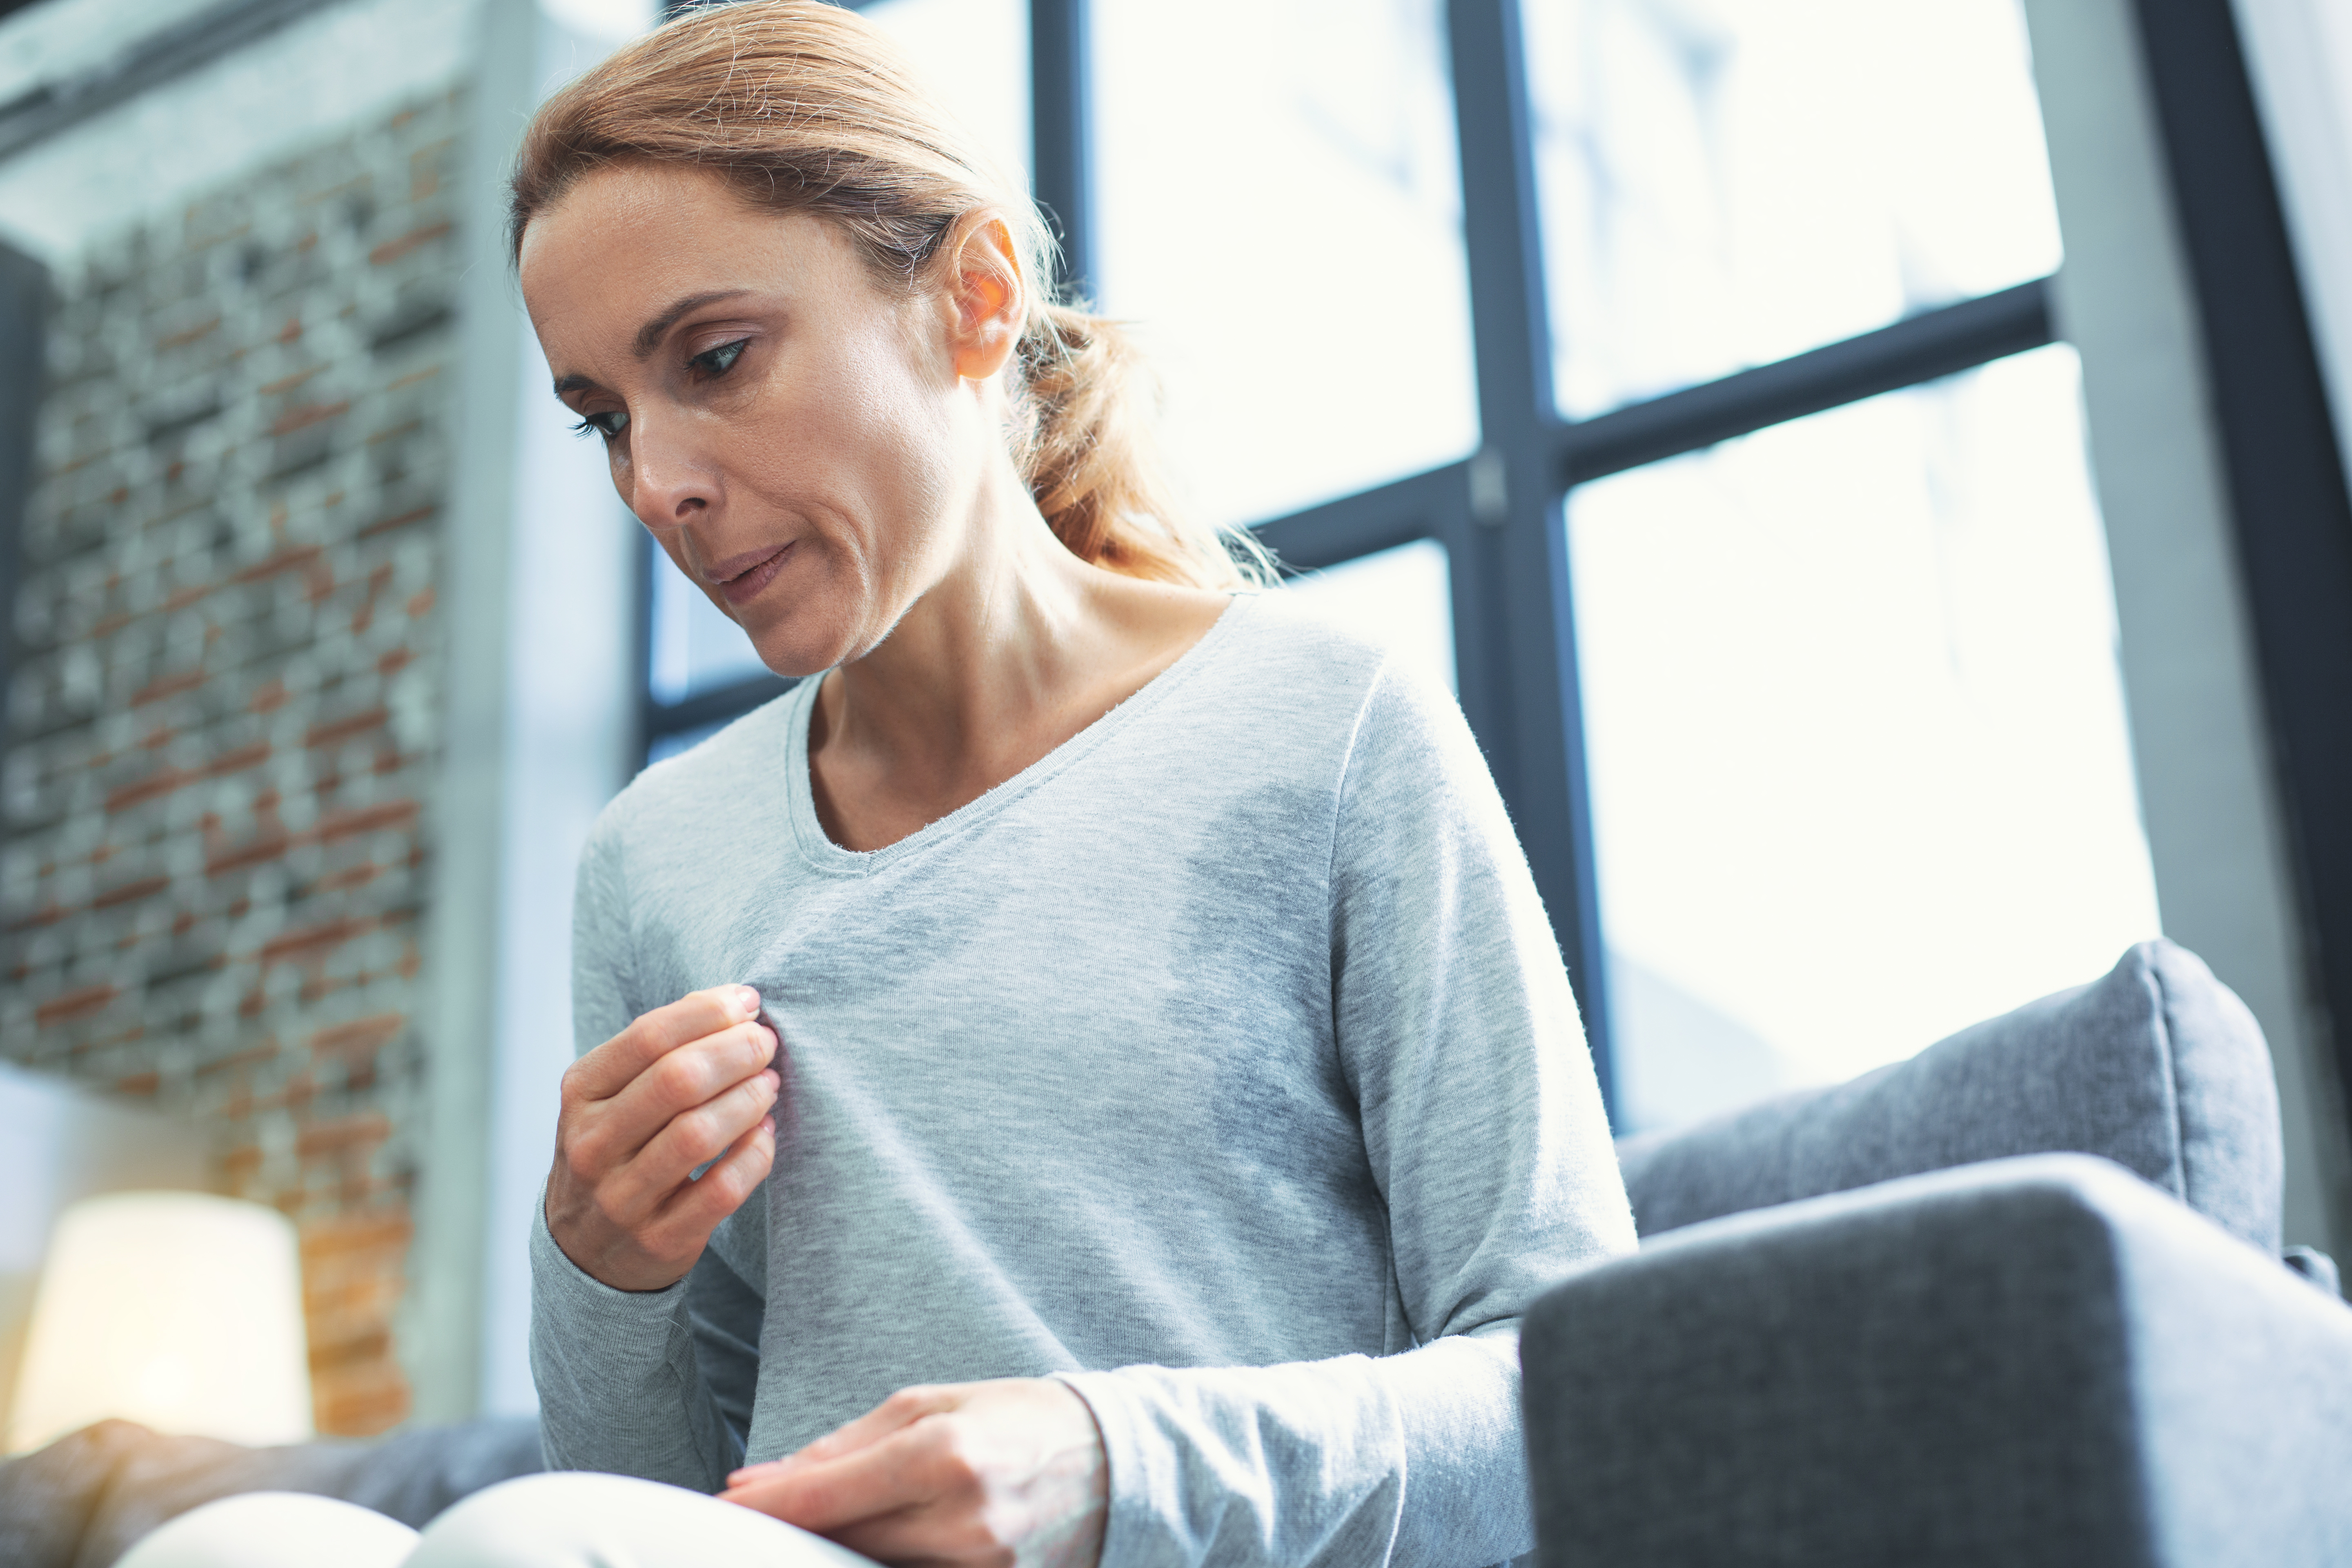 Study shows diet causes 84% drop in troublesome menopausal symptoms–without drugs